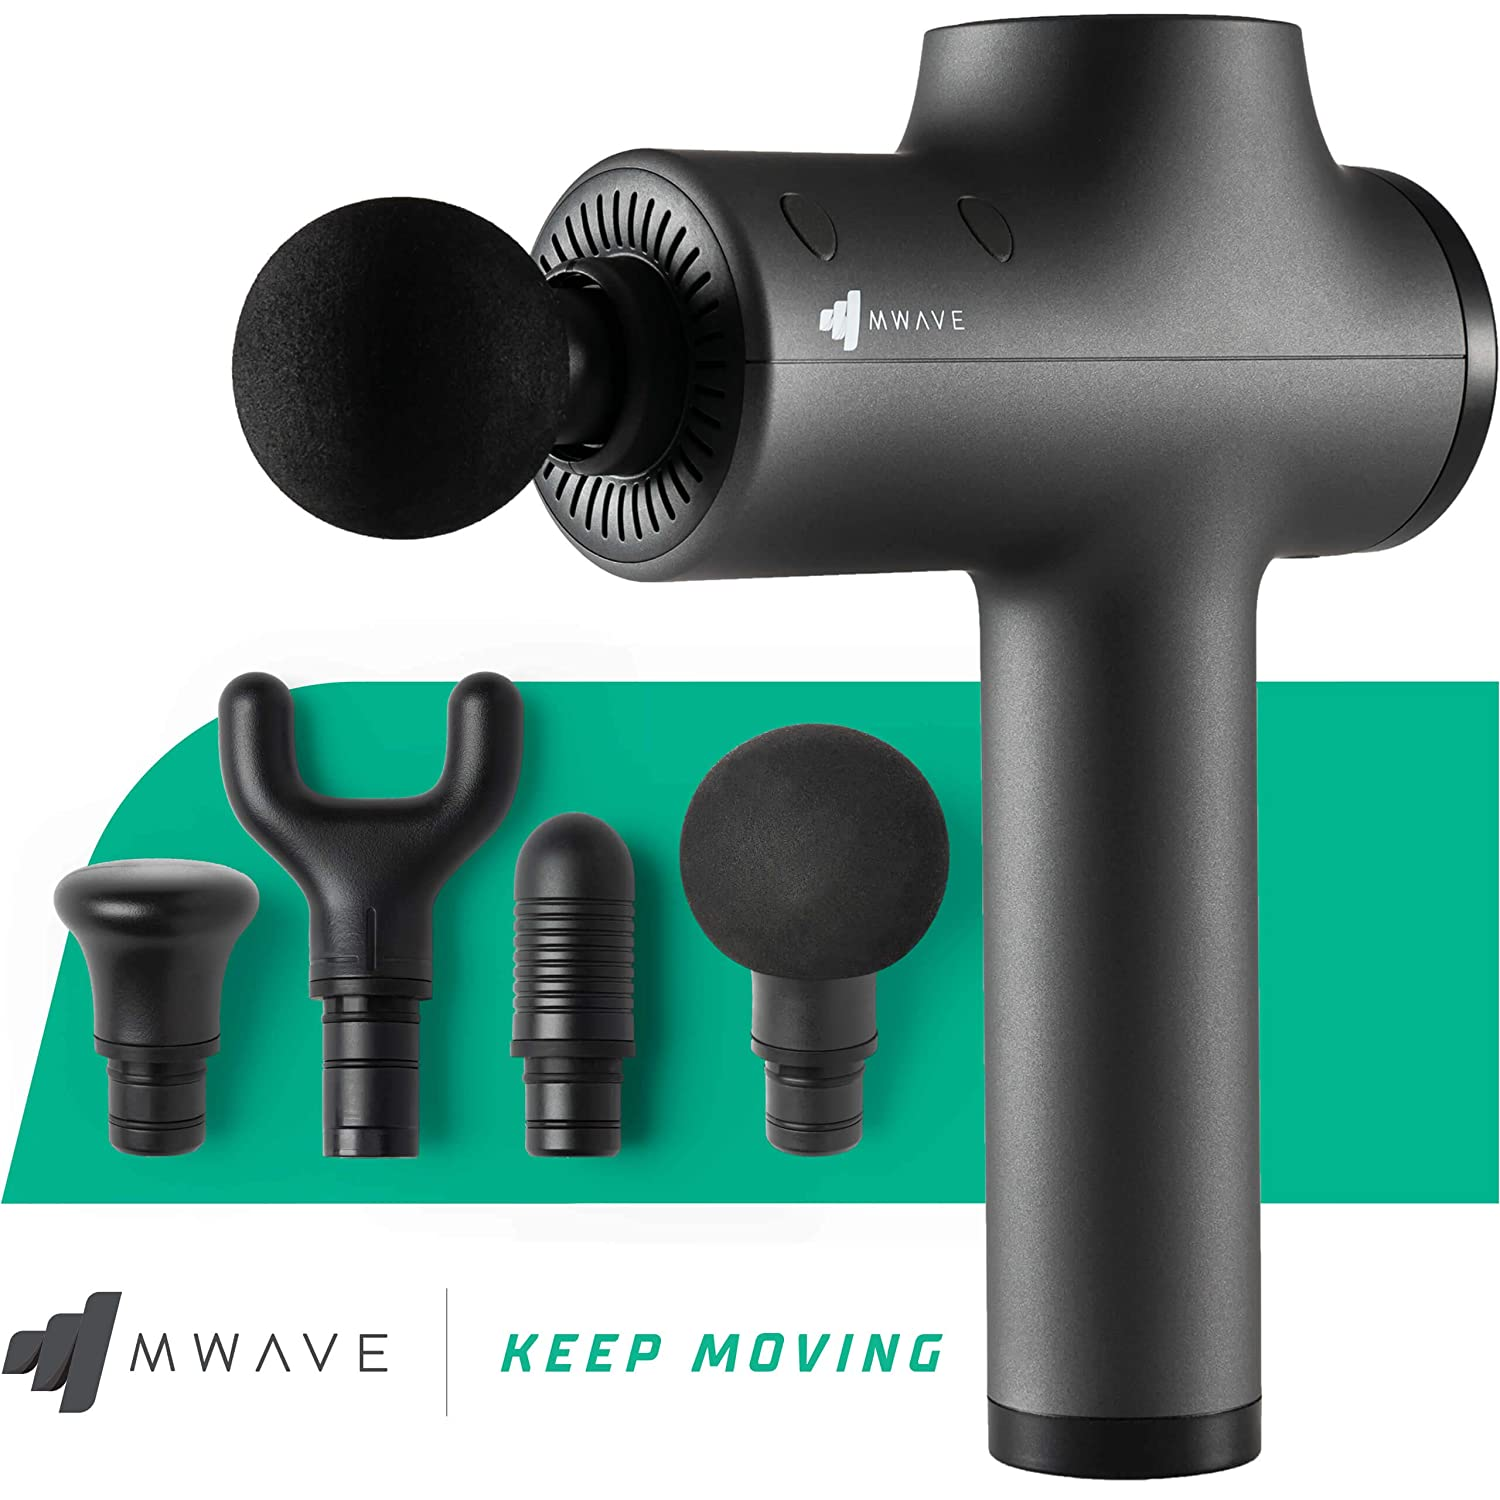 MWave Deep Tissue Percussion Massager Quiet and Compact Muscle Massage Gun for Athletes Deep Tissue Massage Gun with 4 hr Battery Life Deep Muscle Massager Gun